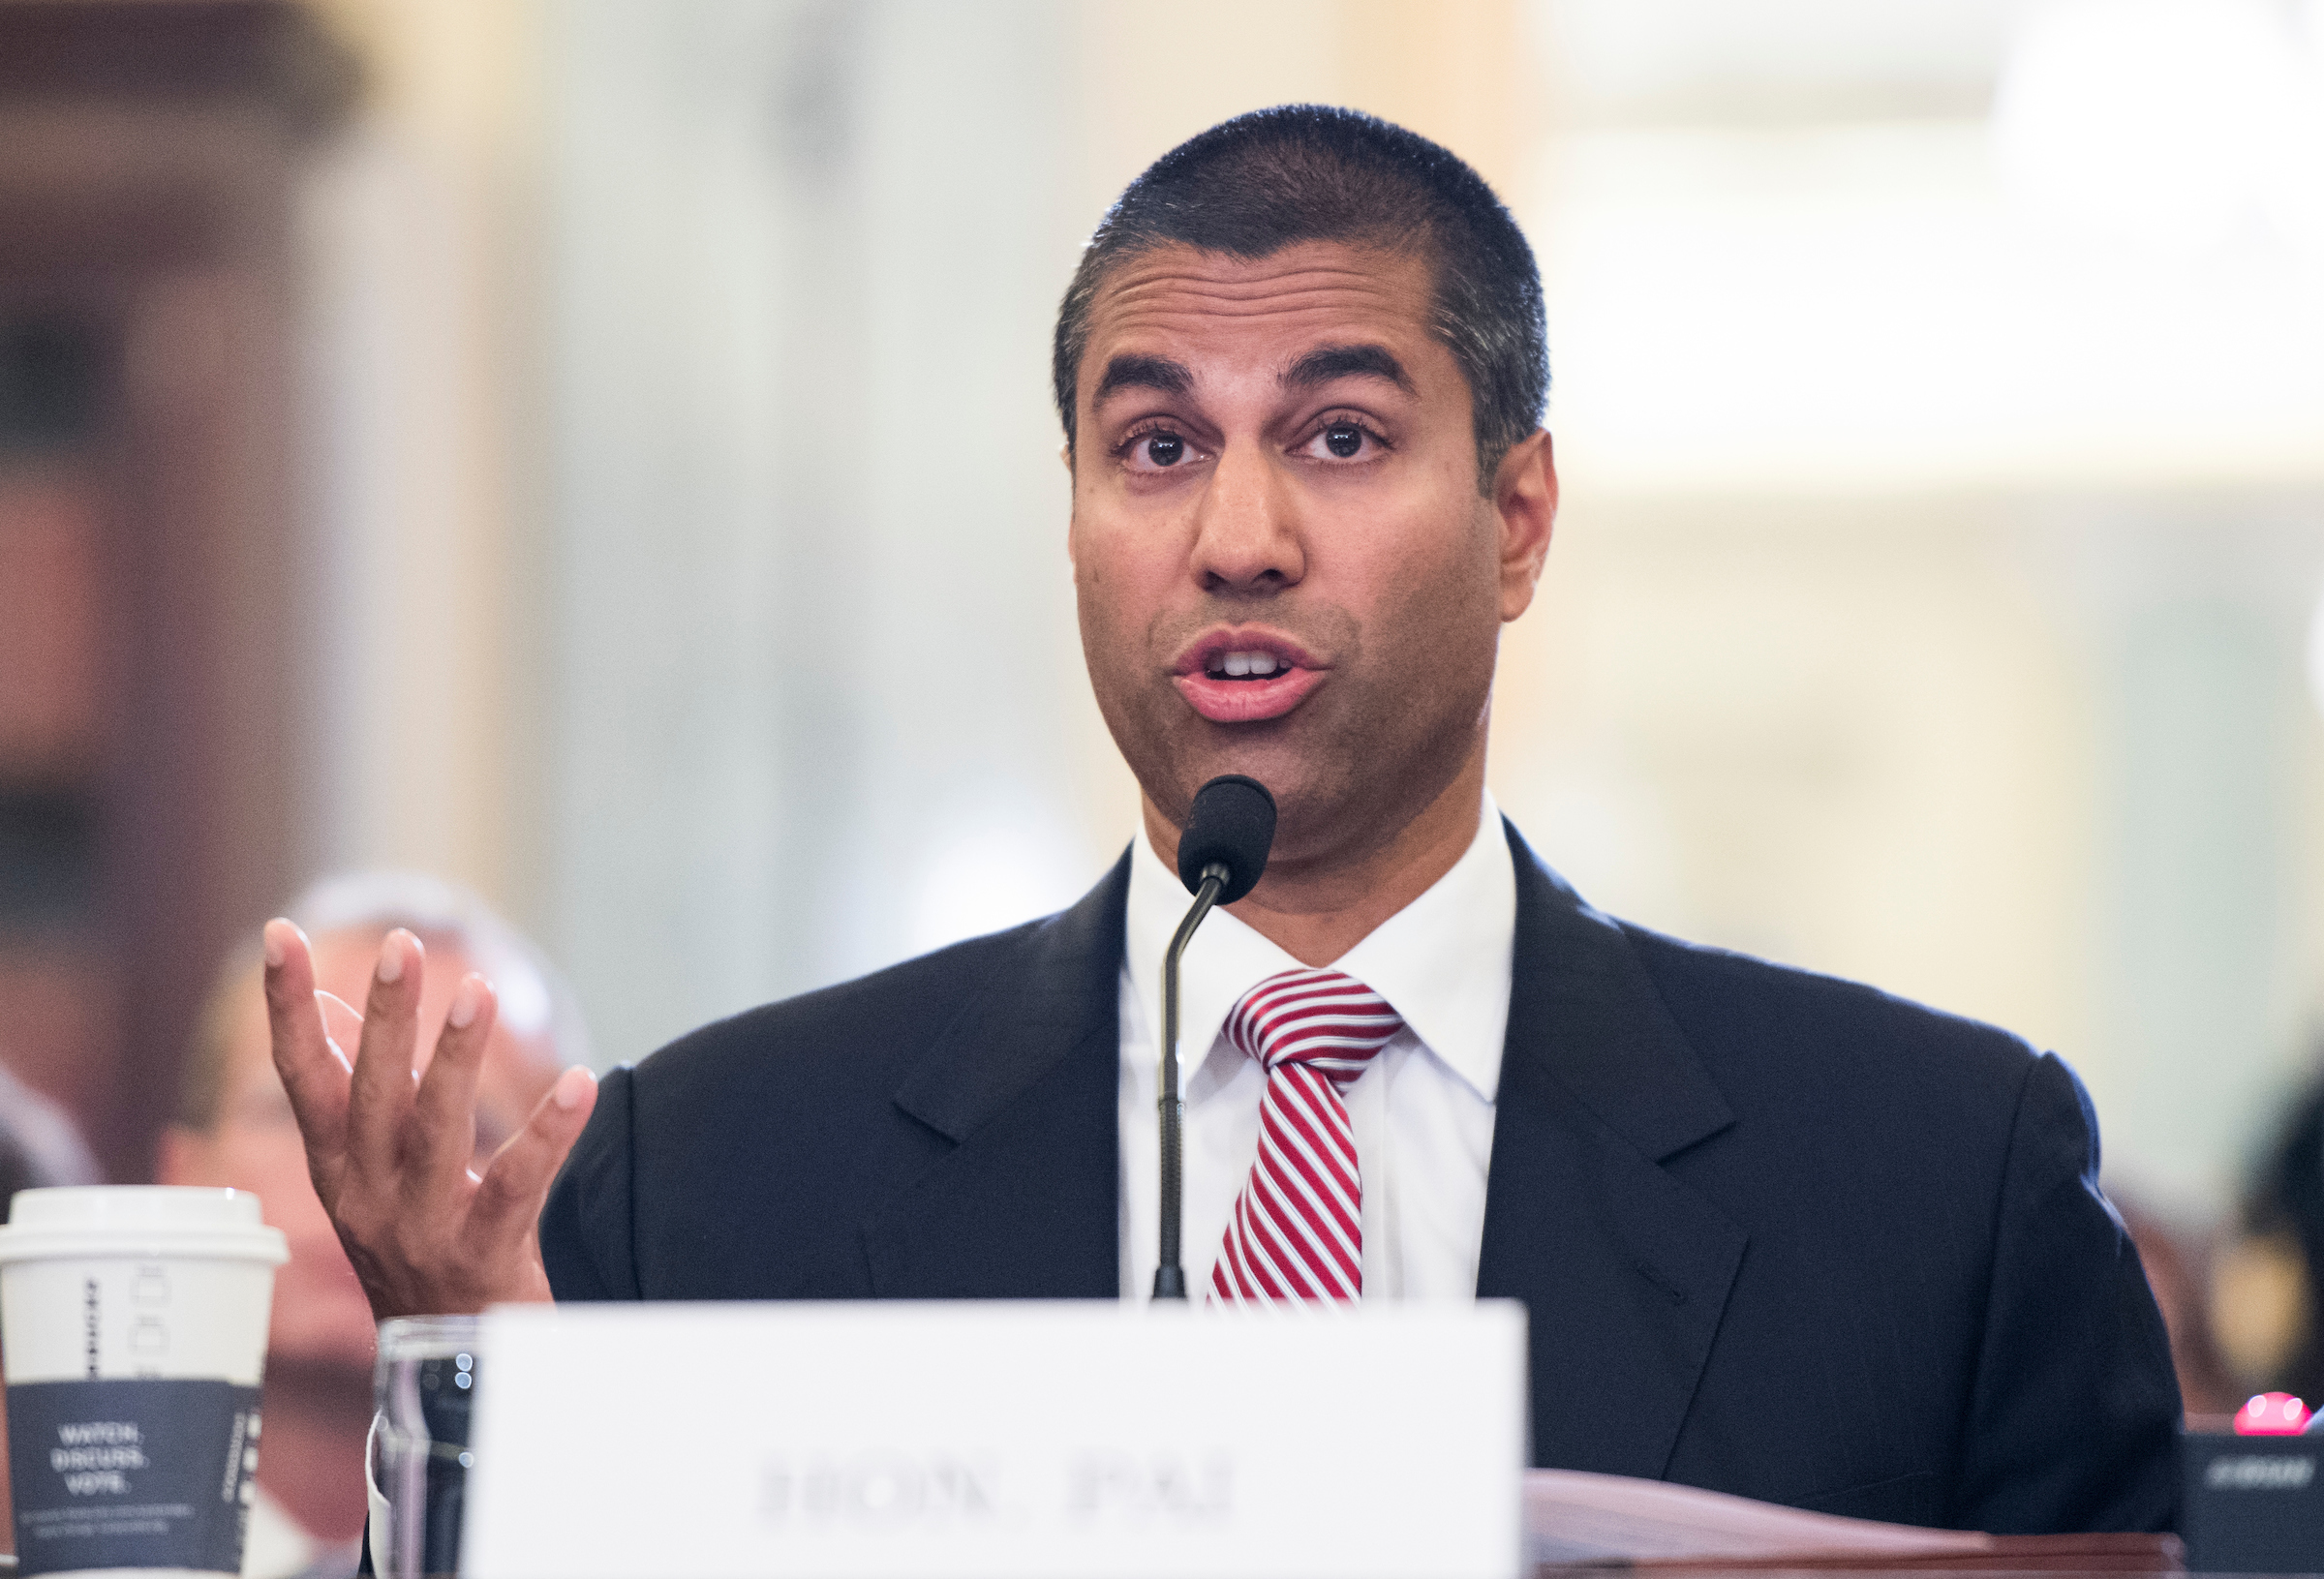 Ajit Pai became chairman of the Federal Communications Commission in January. (Bill Clark/CQ Roll Call file photo)